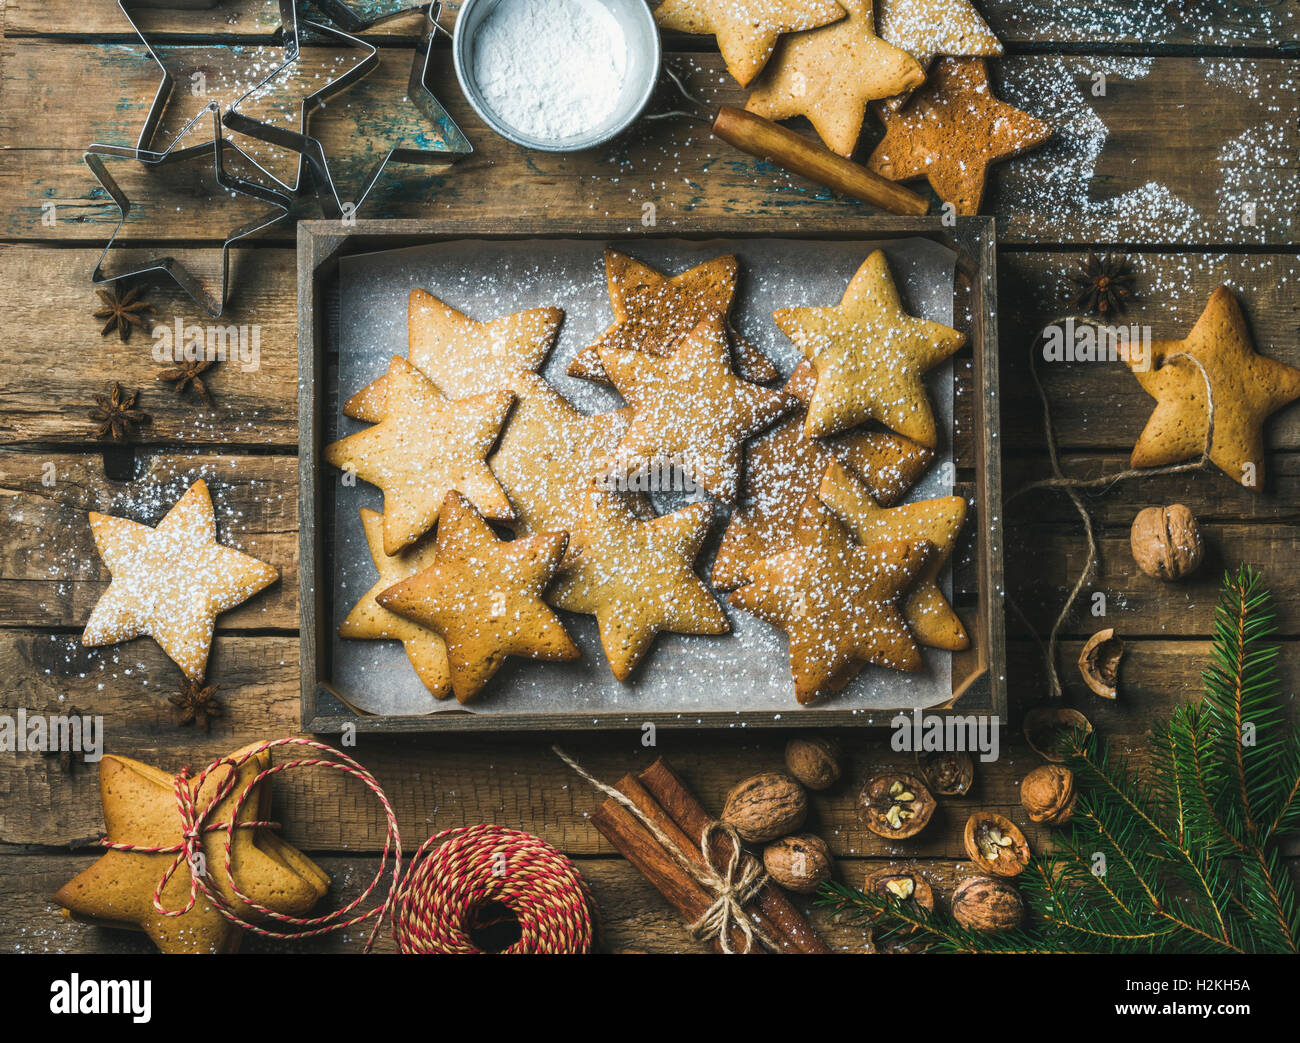 Gingerbread star shaped cookies in wooden tray with baking paper at bottom, sugar powder, nuts, spices, baking molds, - Stock Image